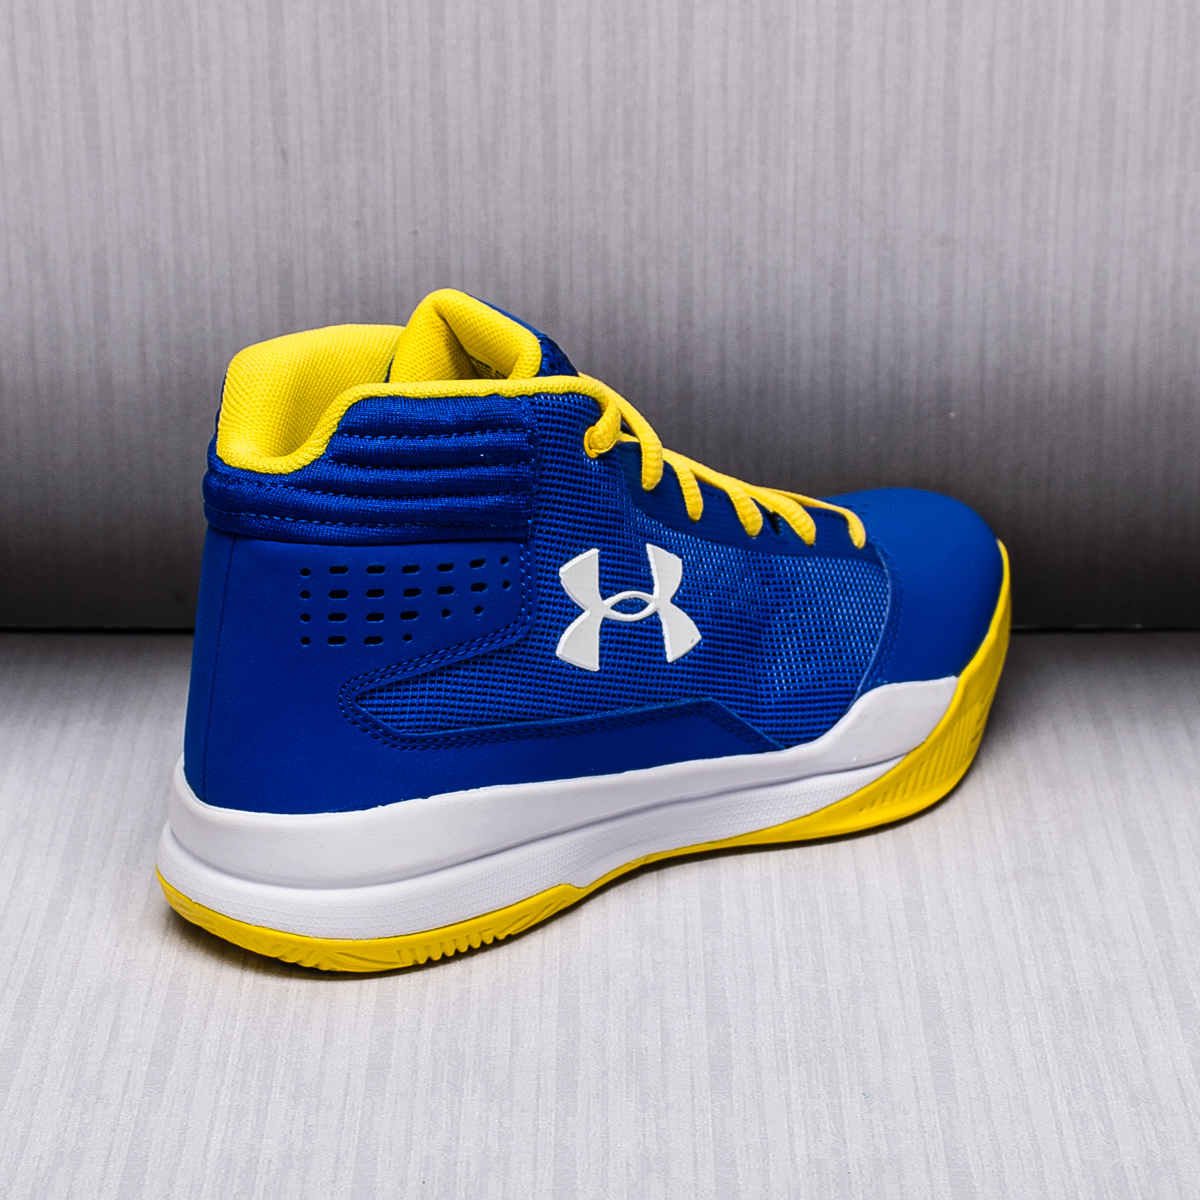 Under Armour BGS Jet 2017 Kids Basketball Shoes ...